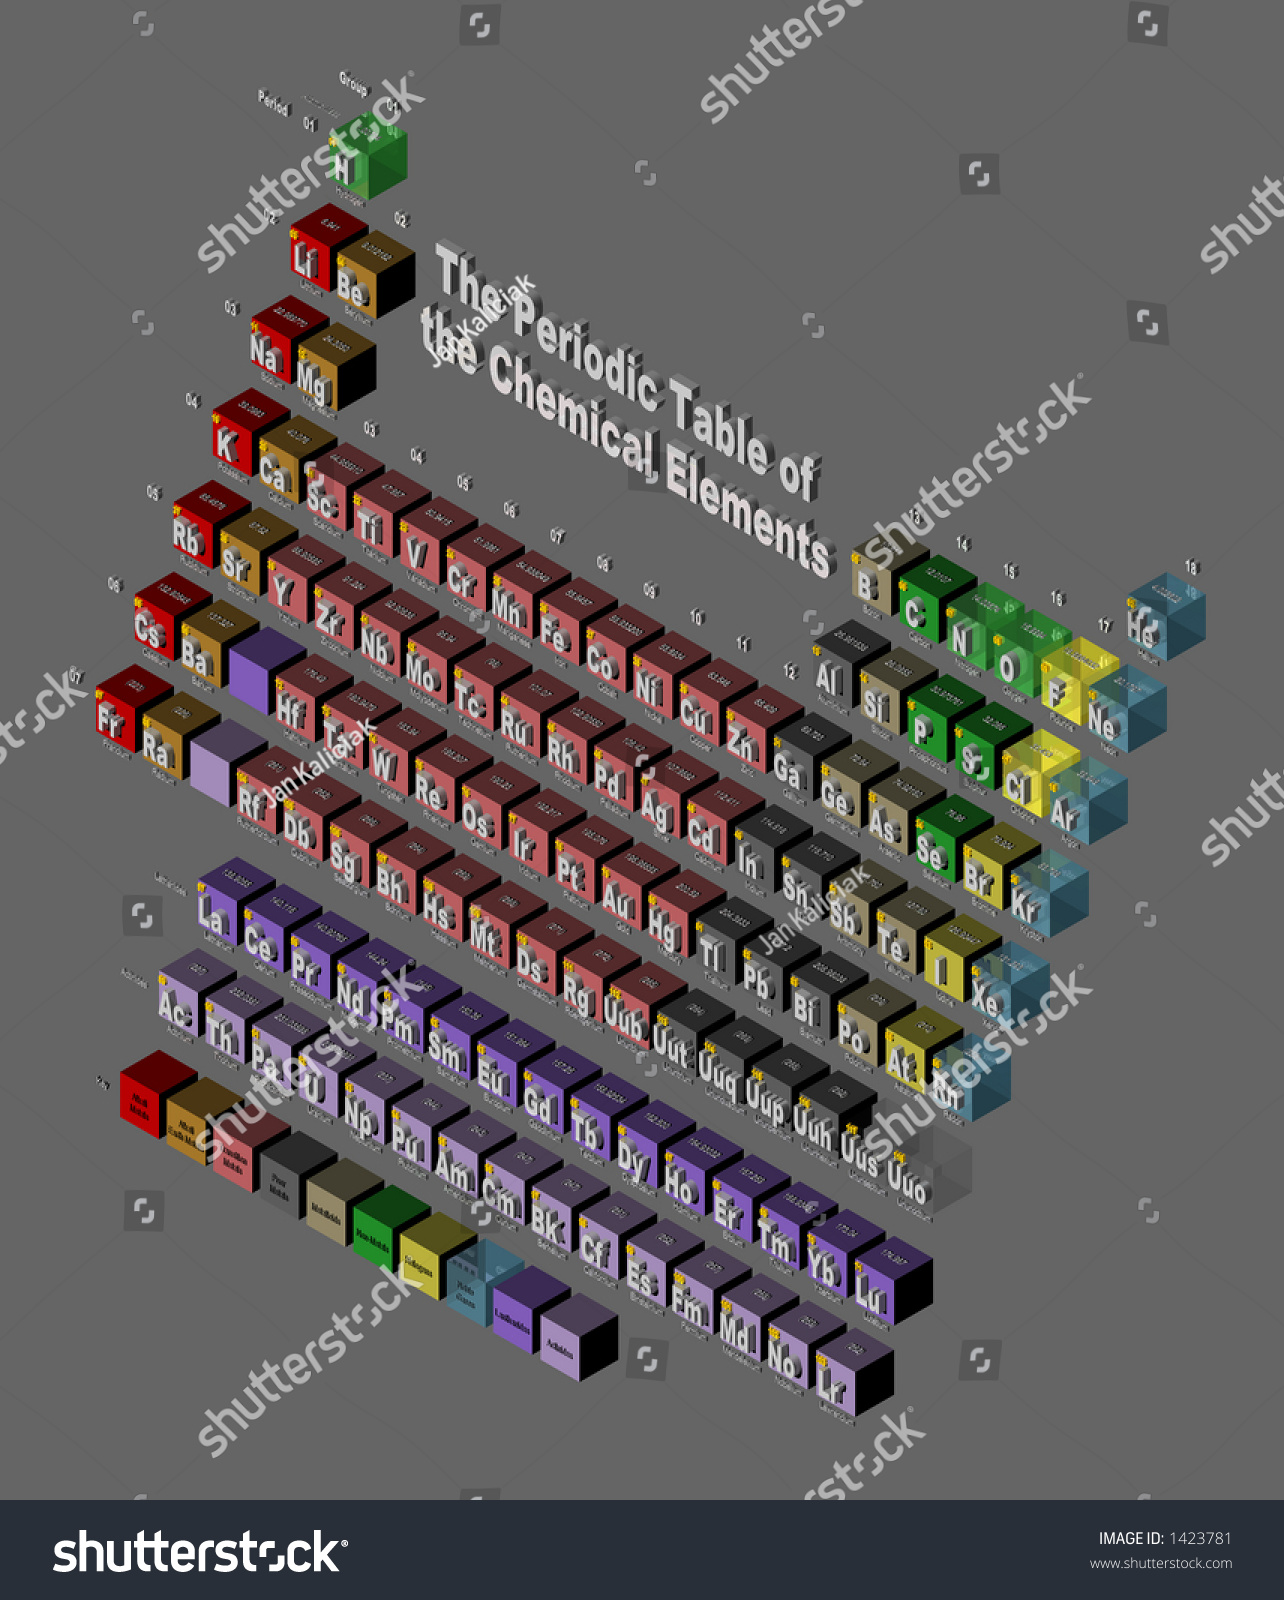 Periodic table chemical elements atomic mass stock illustration the periodic table of chemical elements with atomic mass annotation gamestrikefo Choice Image